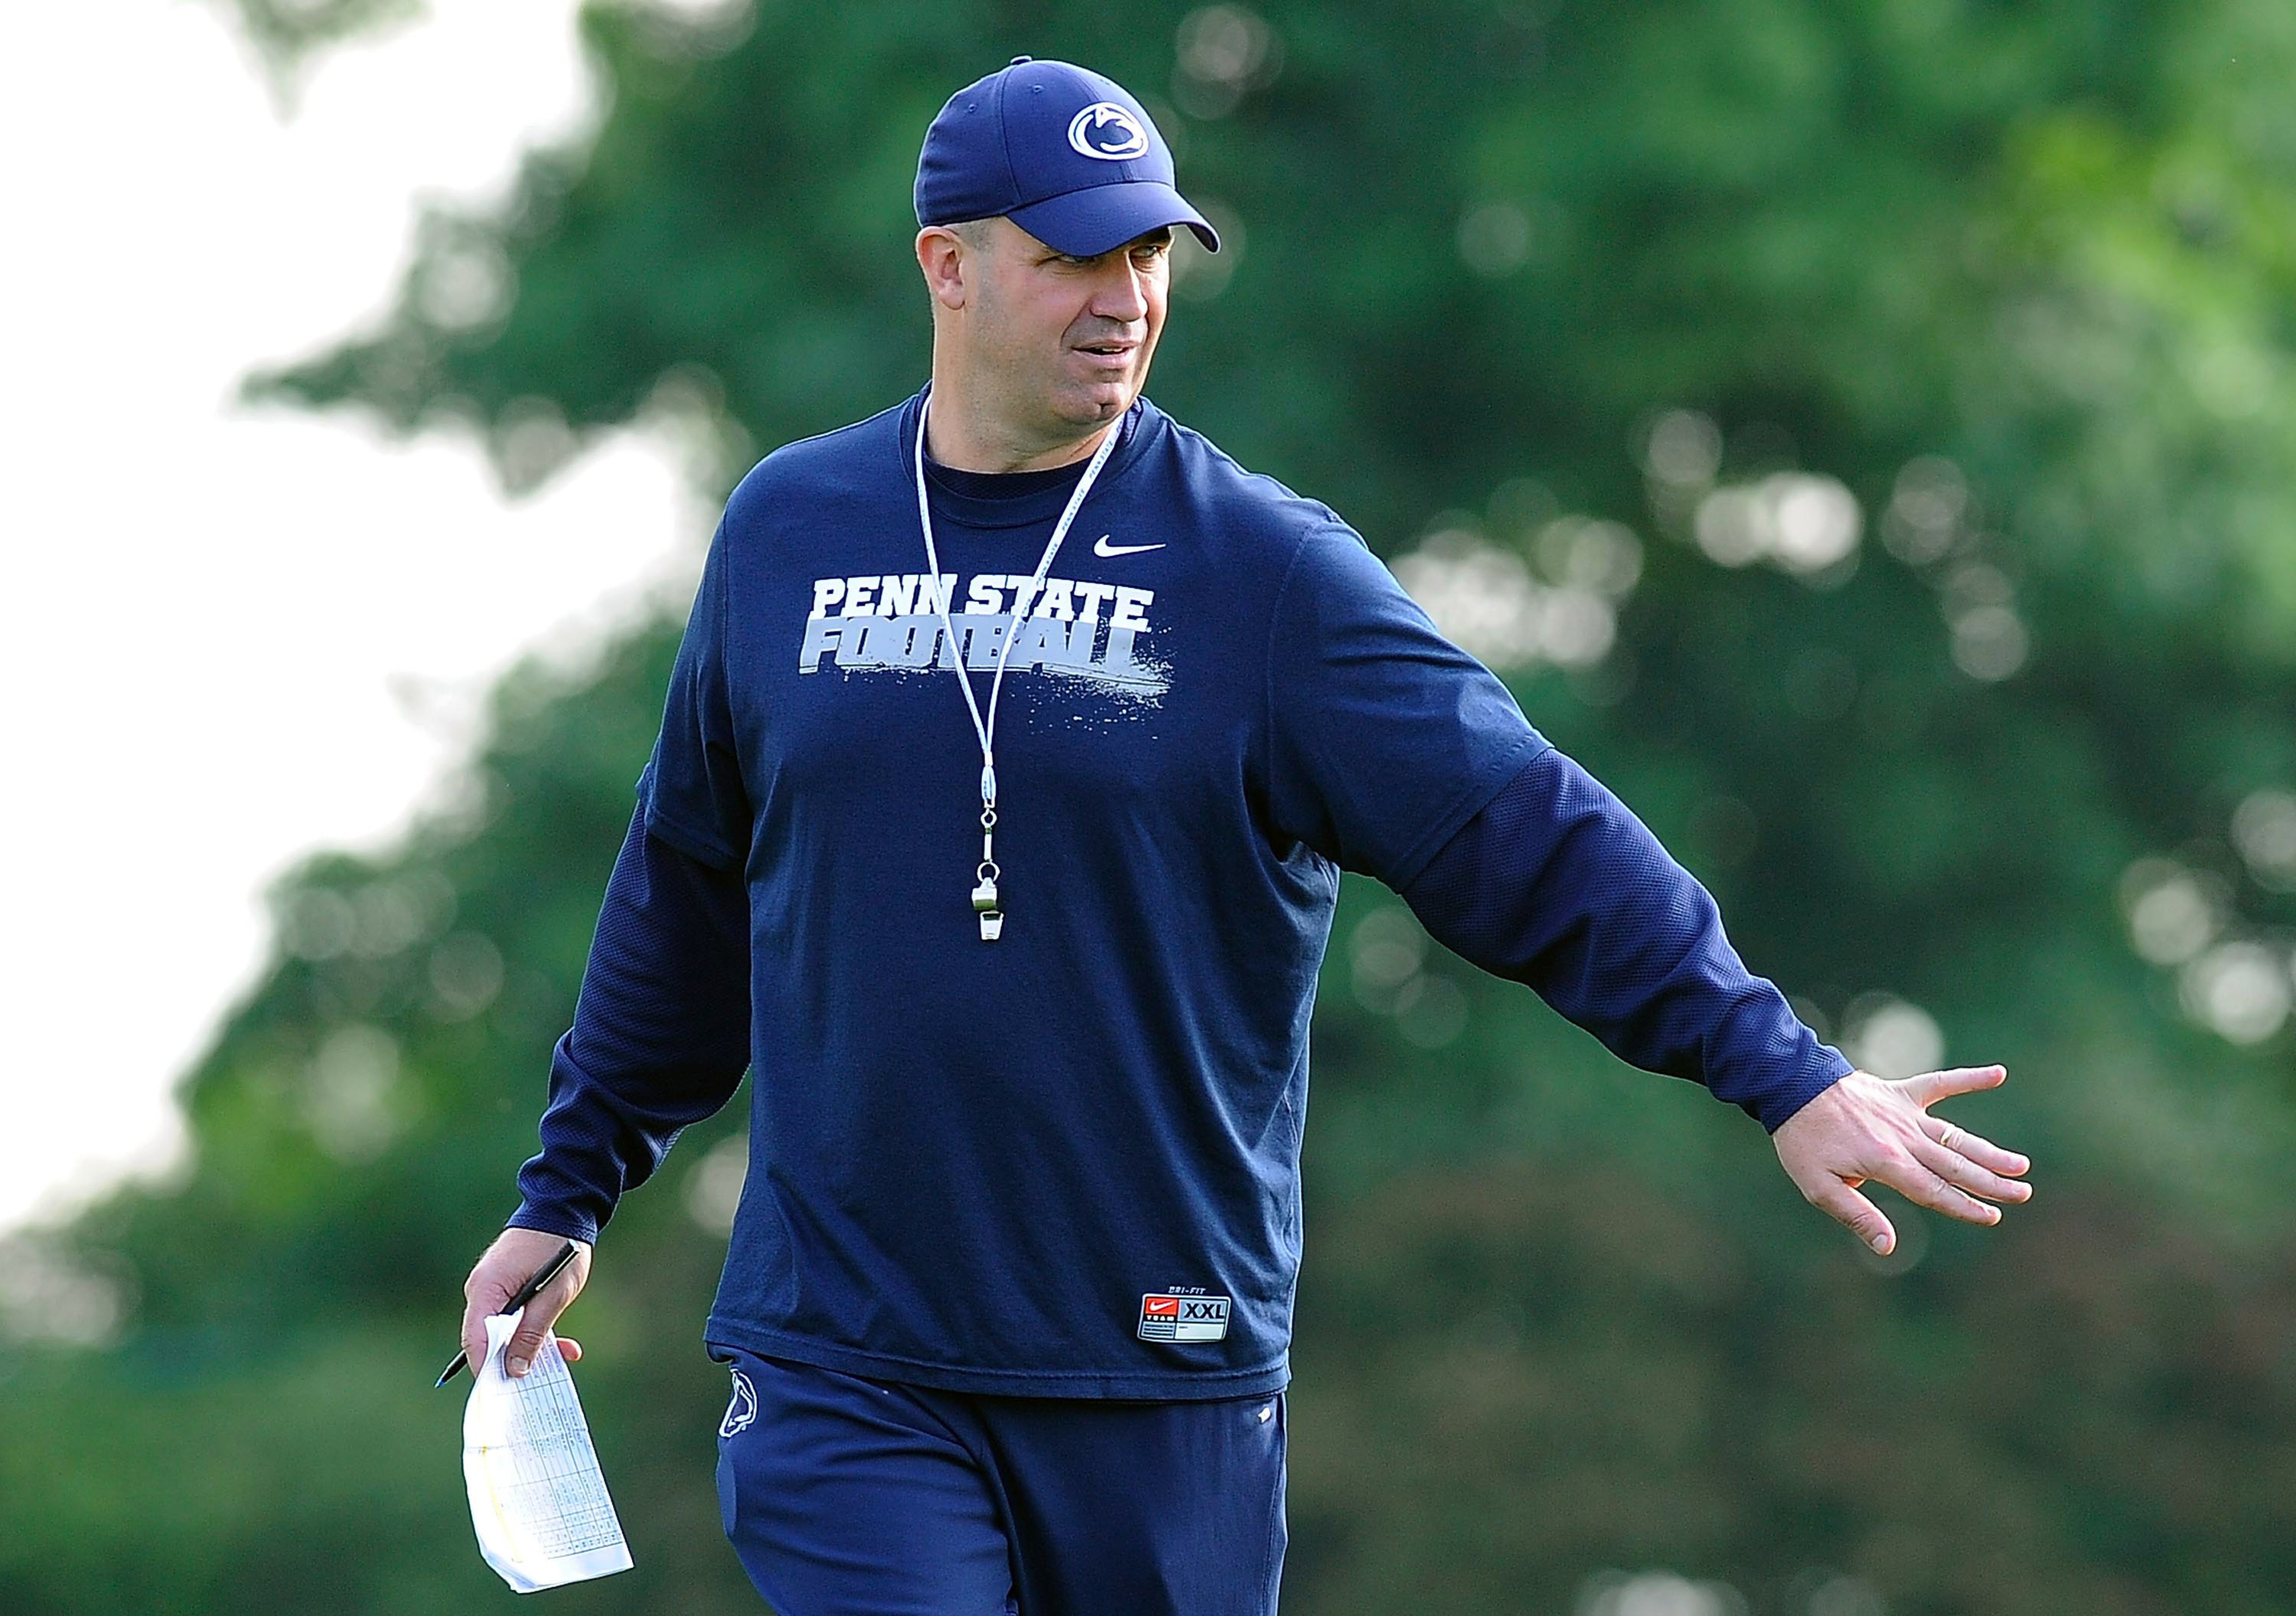 Could this be the next head coach of the Houston Texans?